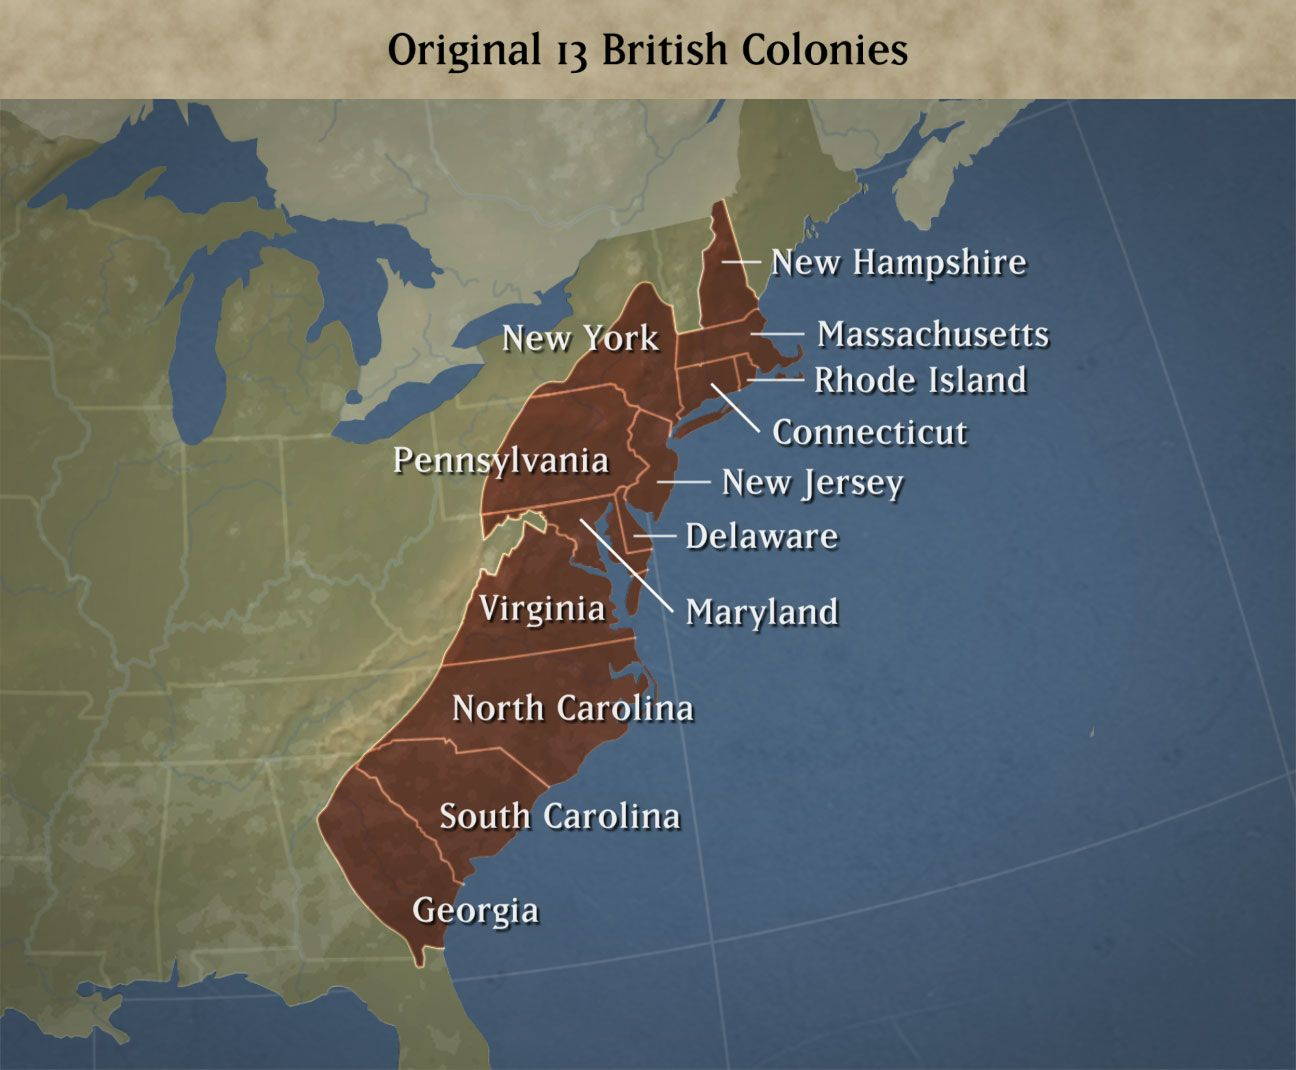 english colonization of north america essay Read colonial america free essay and over 88,000 other research documents colonial america colonial america for colonies not among the thirteen colonies, see european colonization of the americas or english colonization of the.